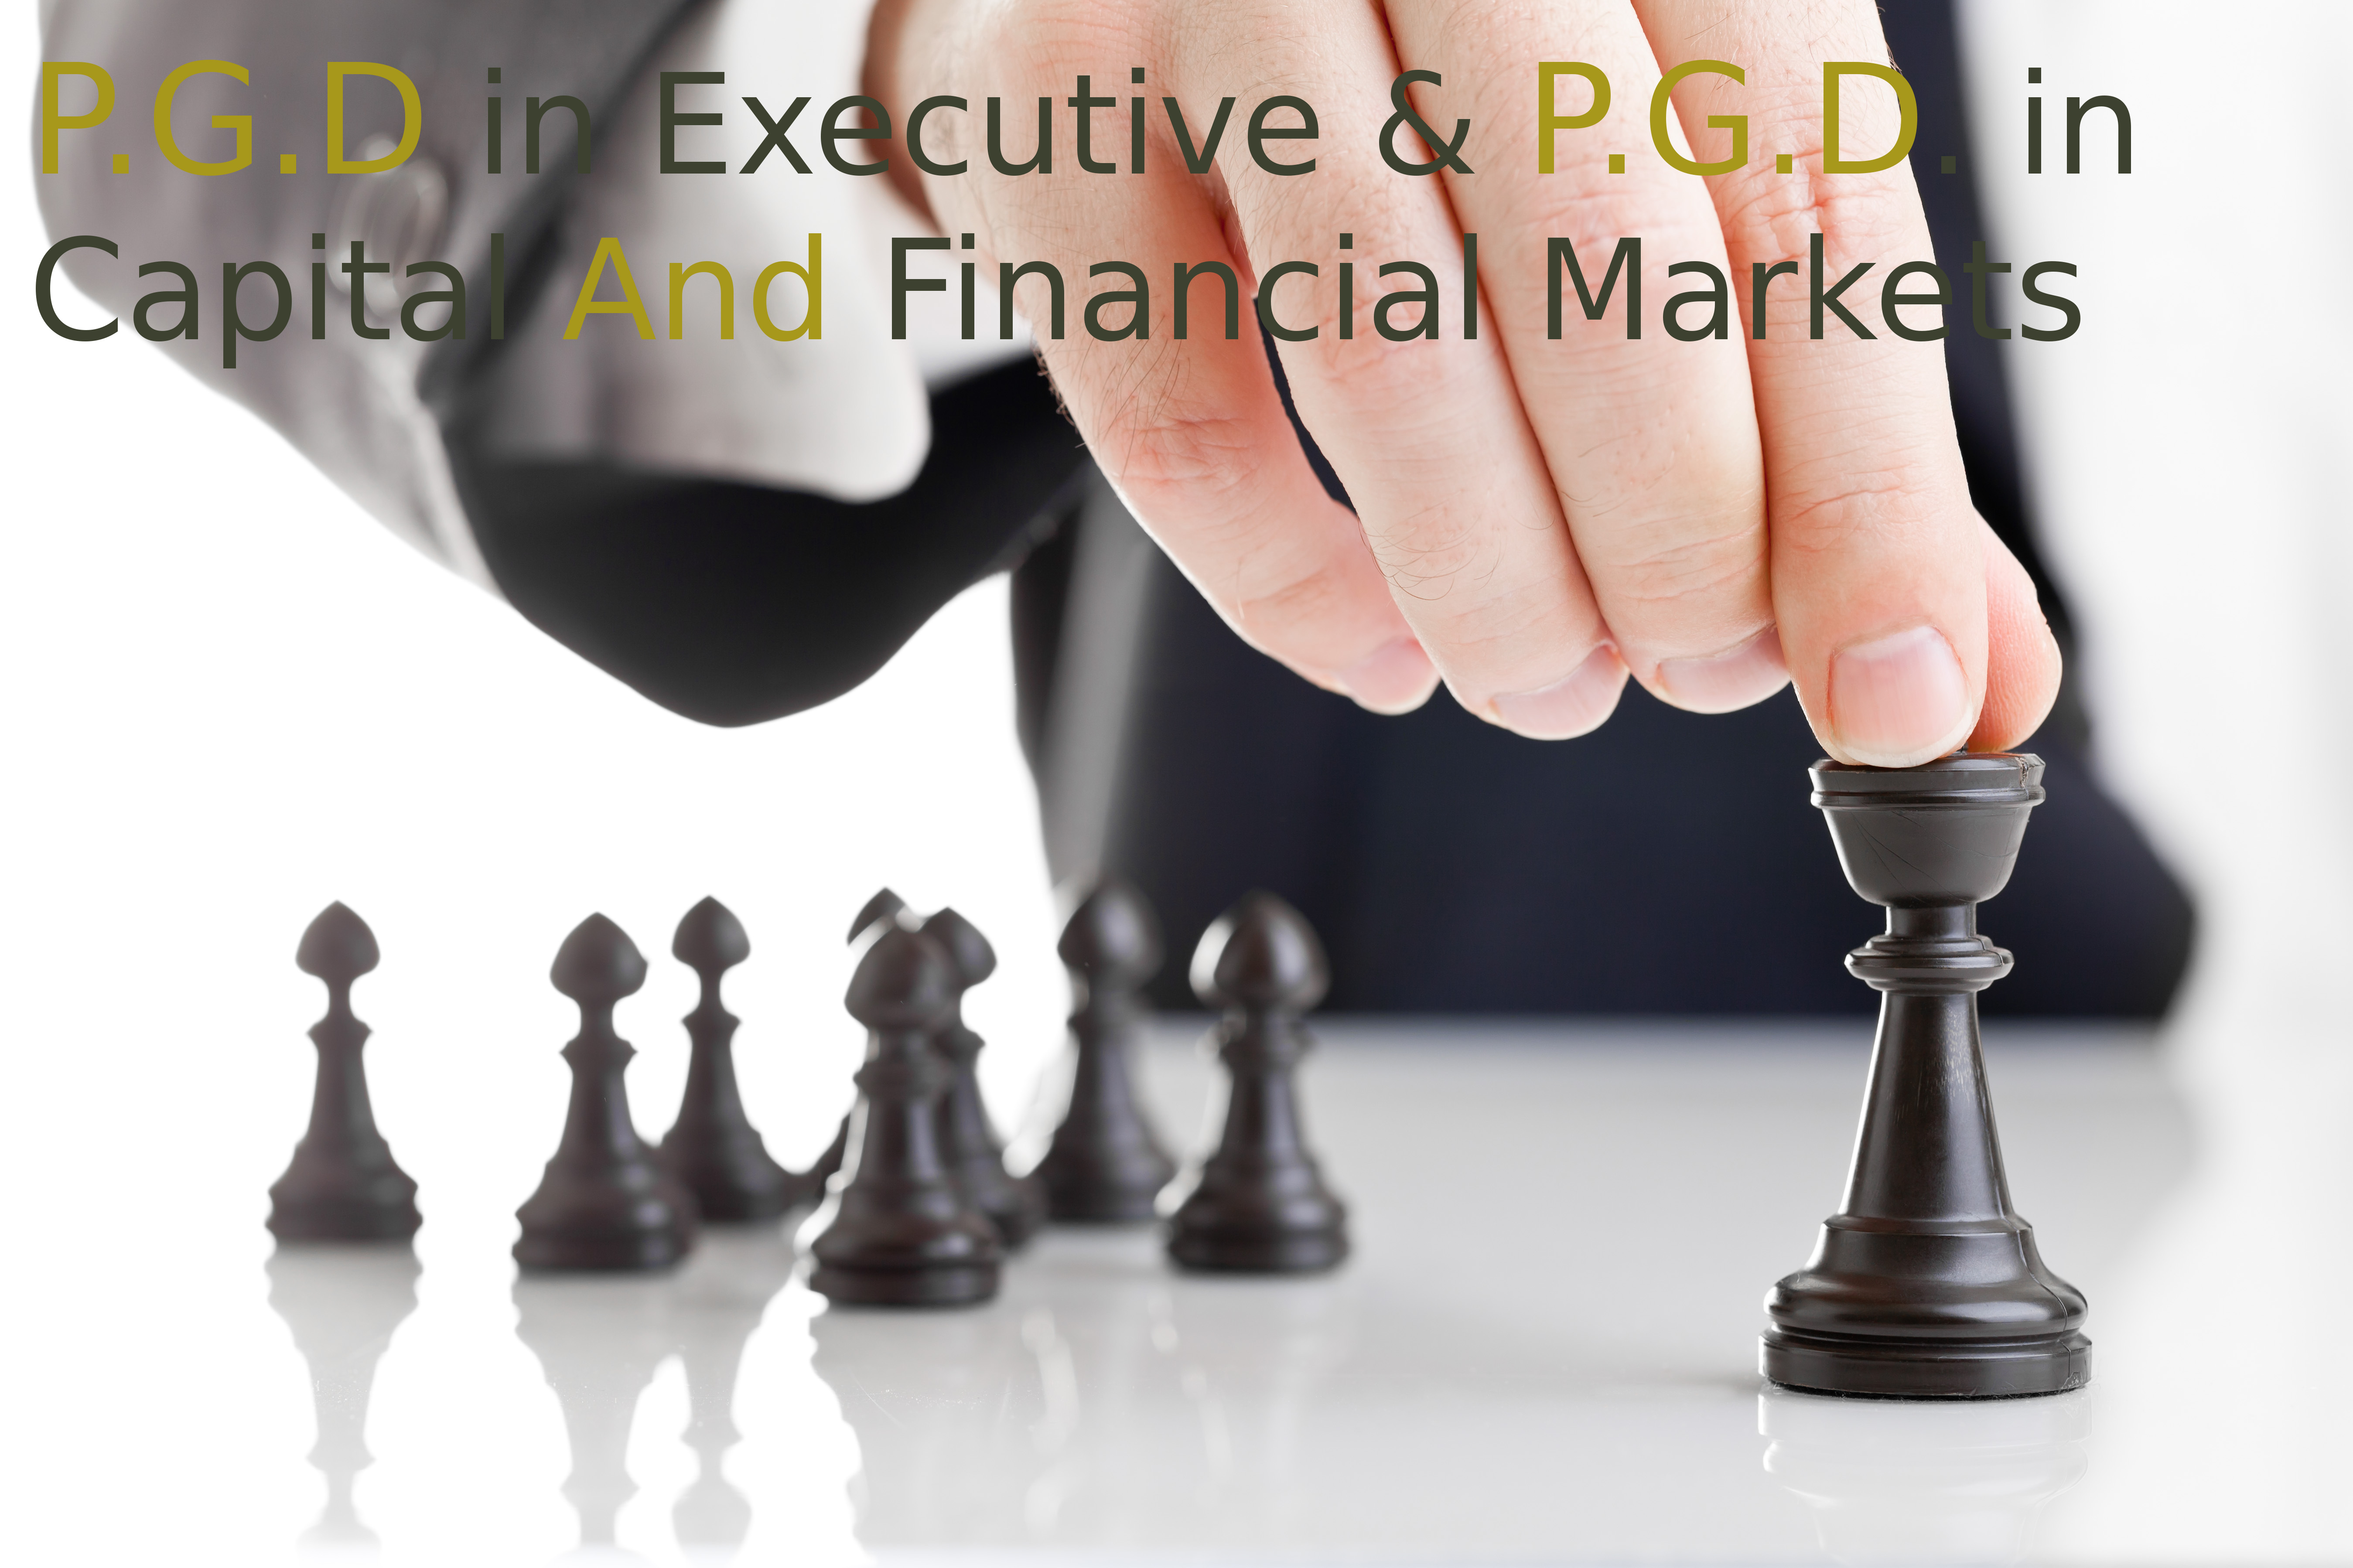 Post Graduate Diploma Executive P.G.D. in Capital And Financial Markets